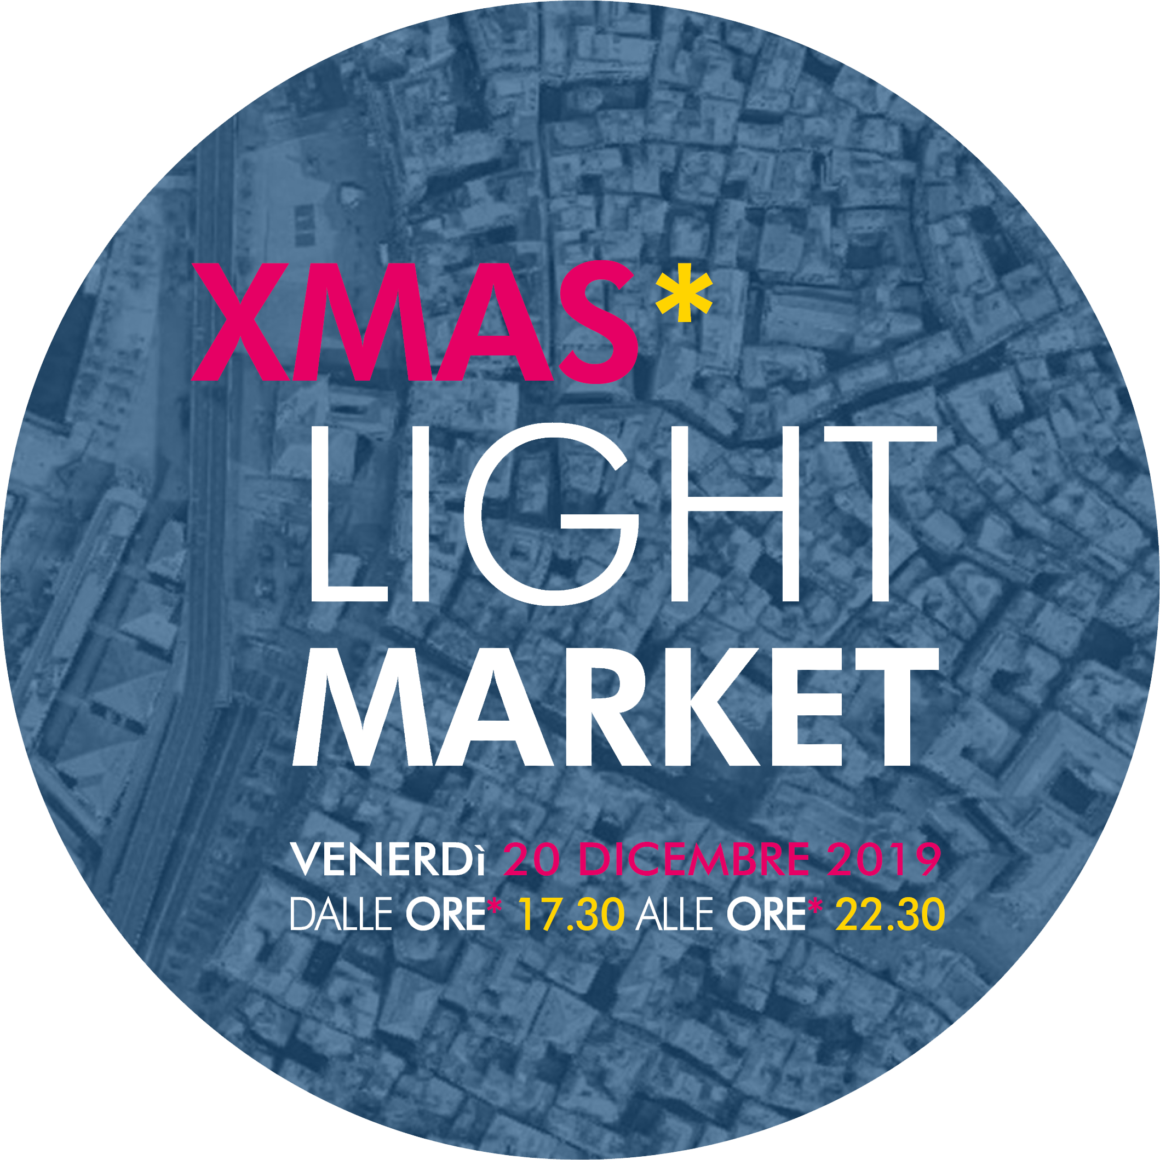 XMAS LIGHT MARKET